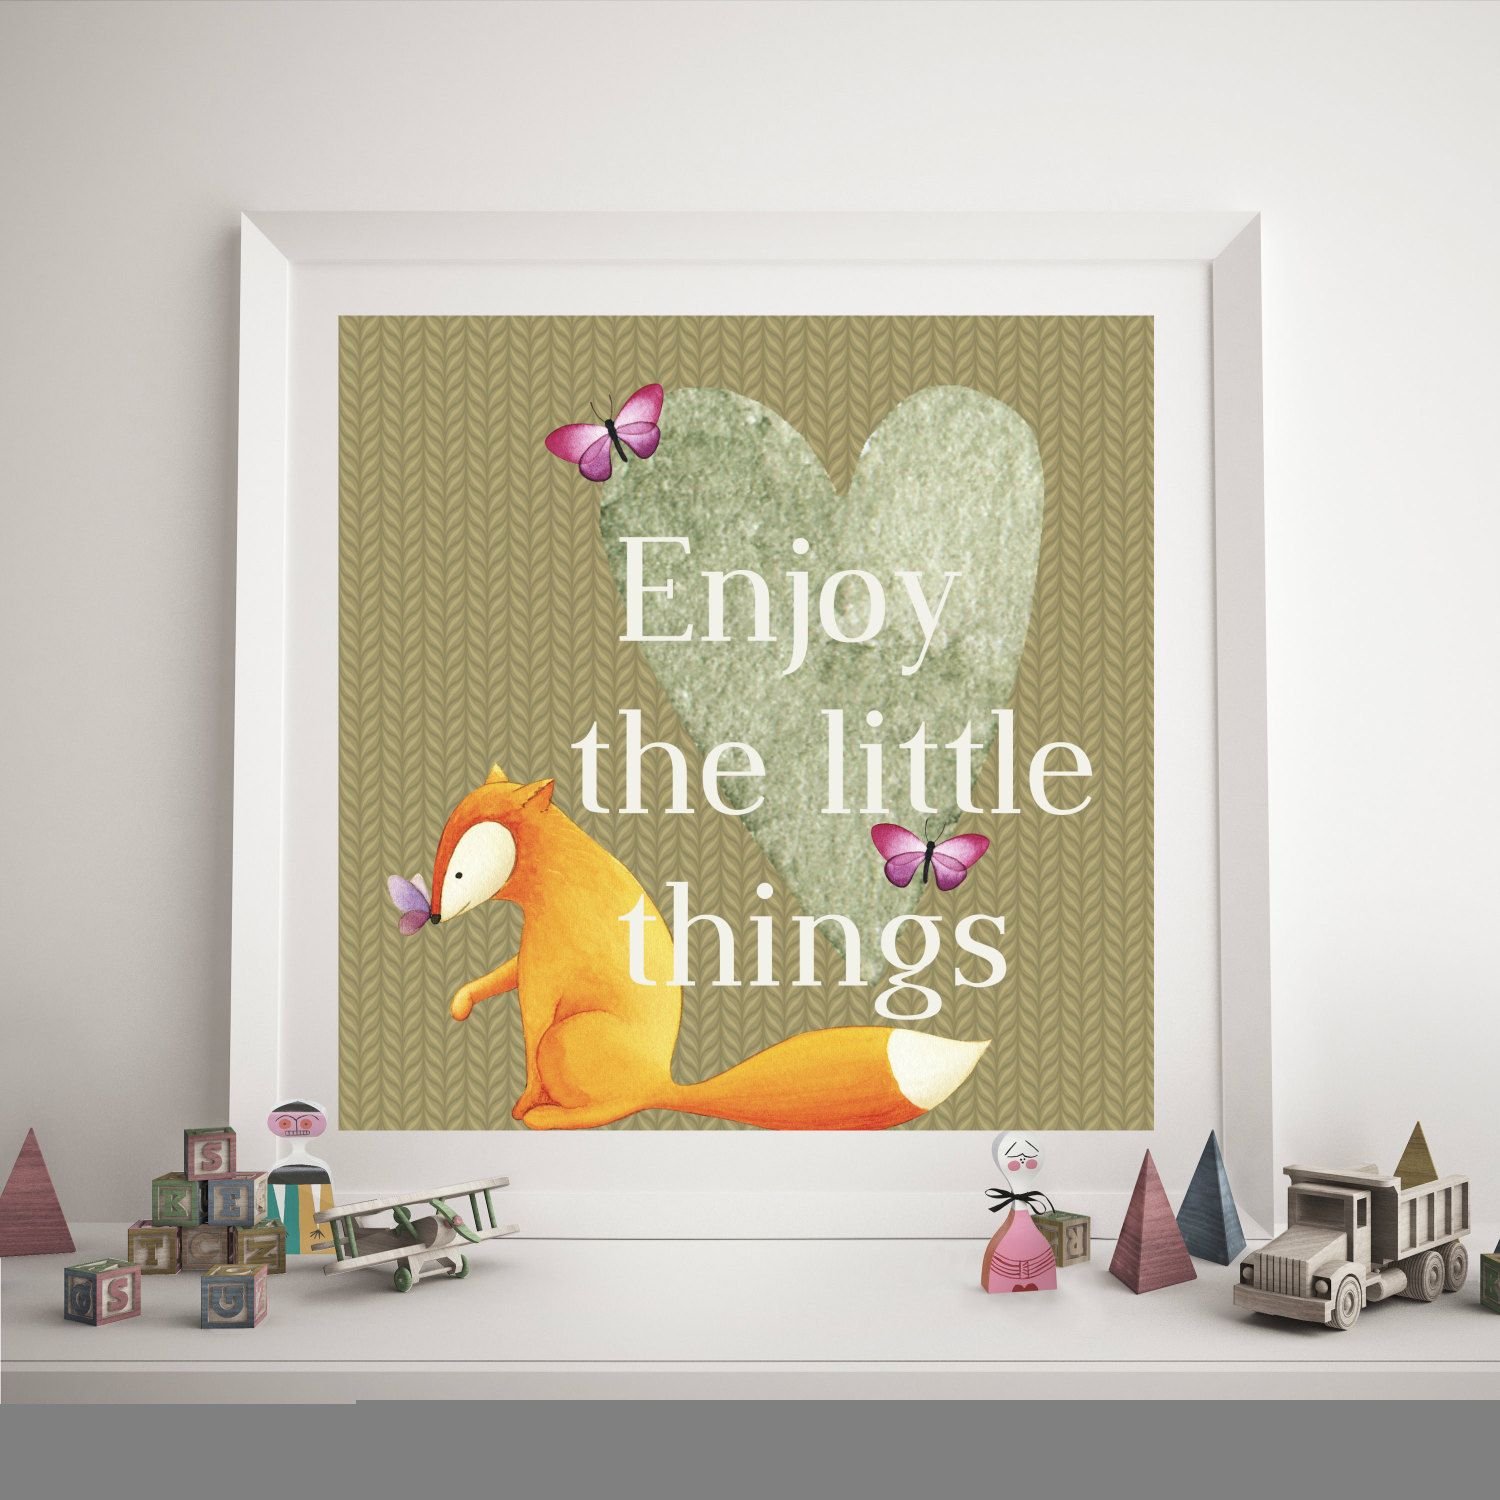 Enjoy the little things, kids and baby decor,wall decor by RapposWorld on Etsy